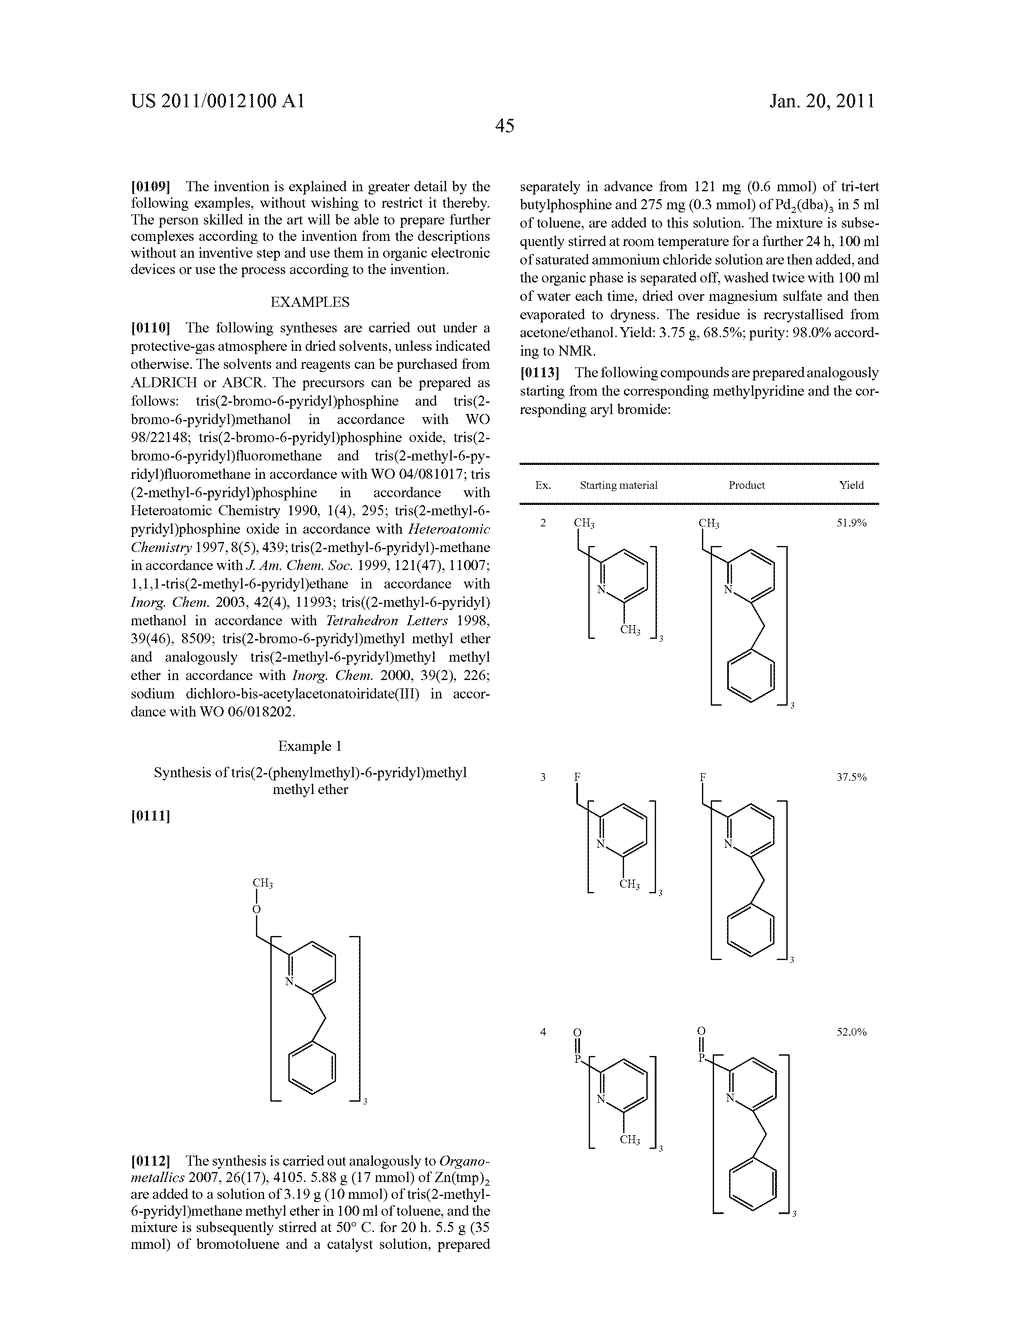 METAL COMPLEXES - diagram, schematic, and image 46